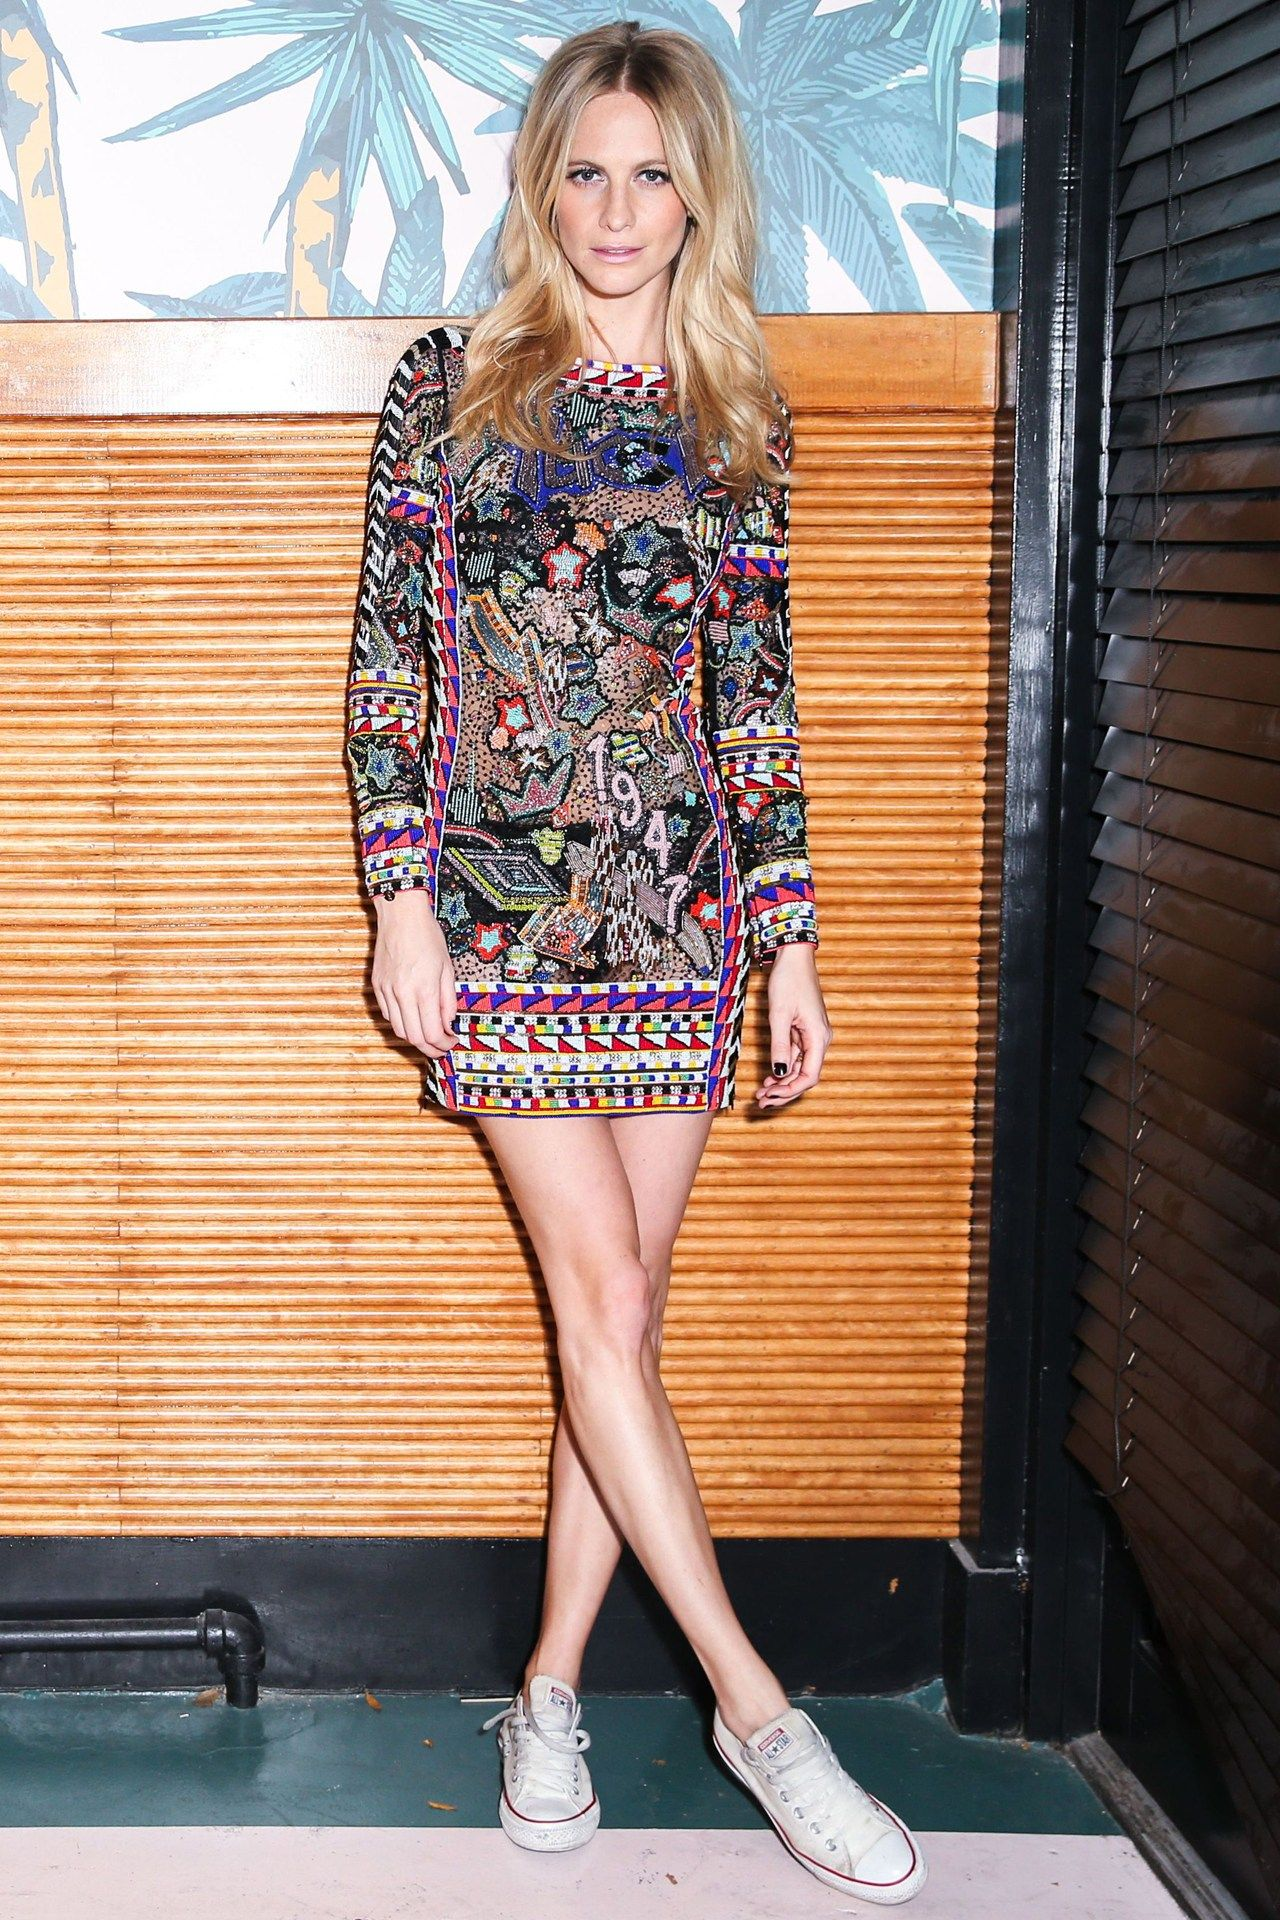 Poppy Delevingne - loving the Chucks with this look!